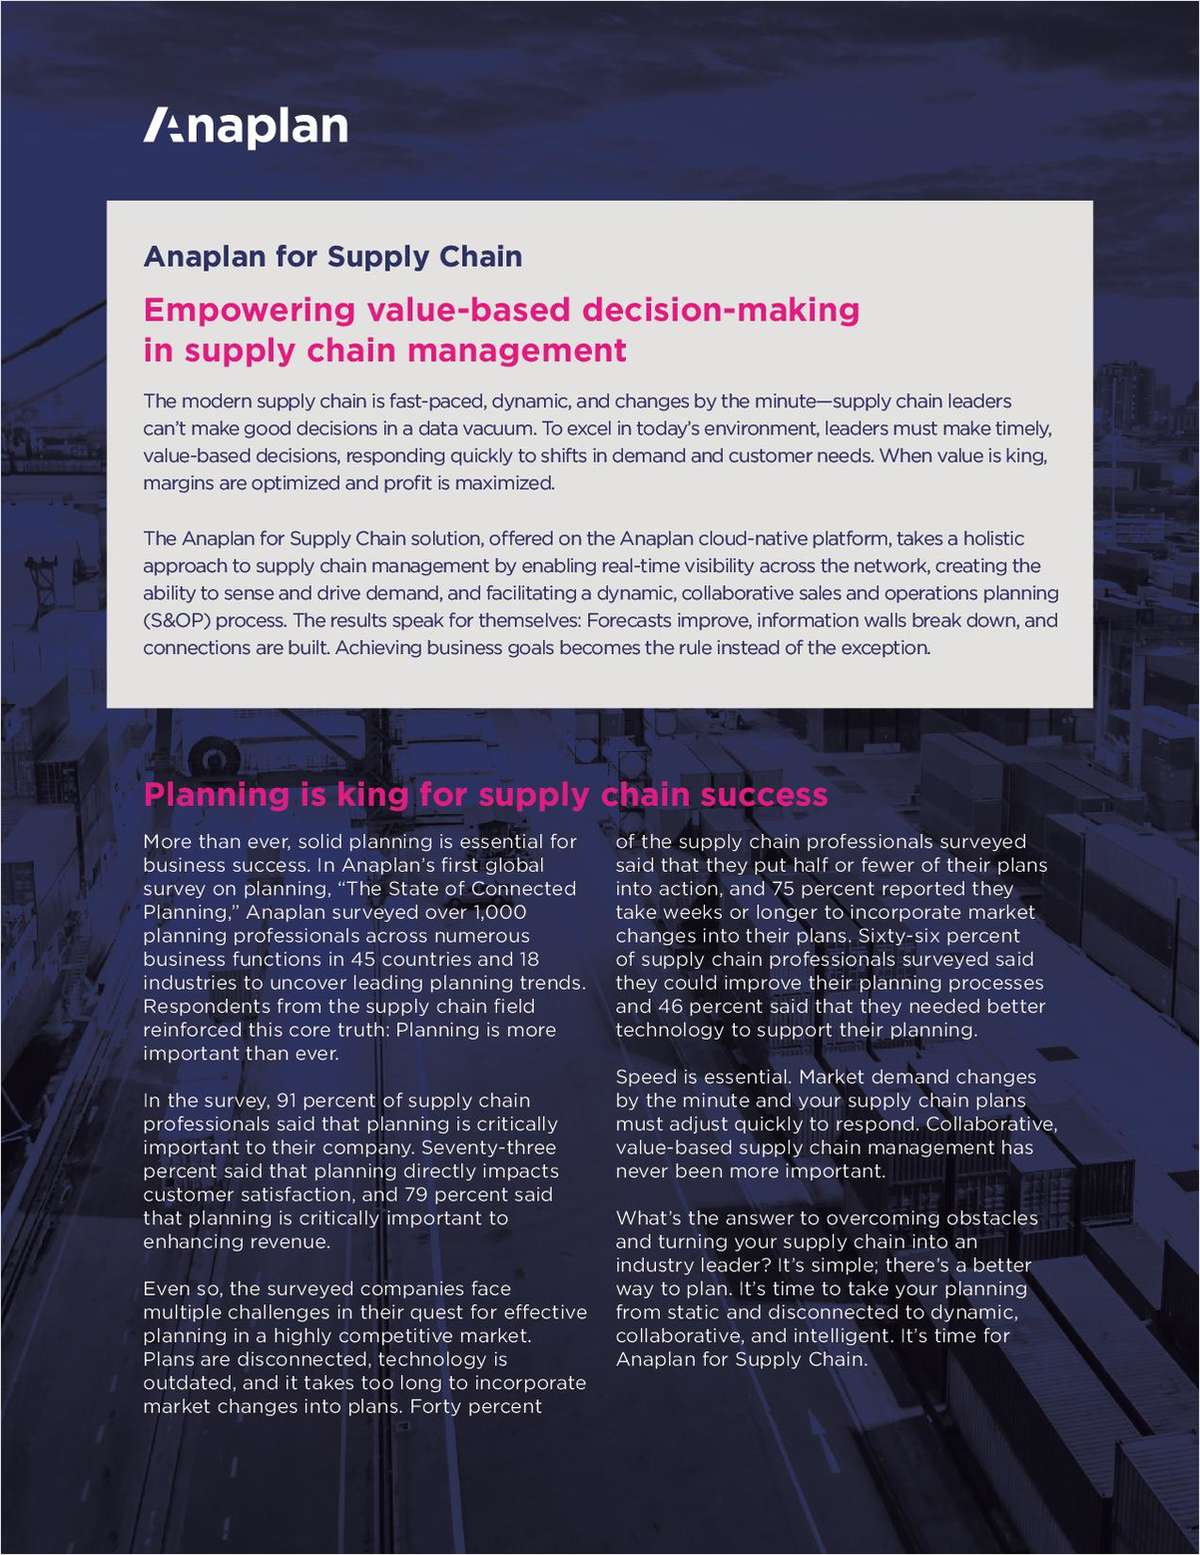 Anaplan for Supply Chain